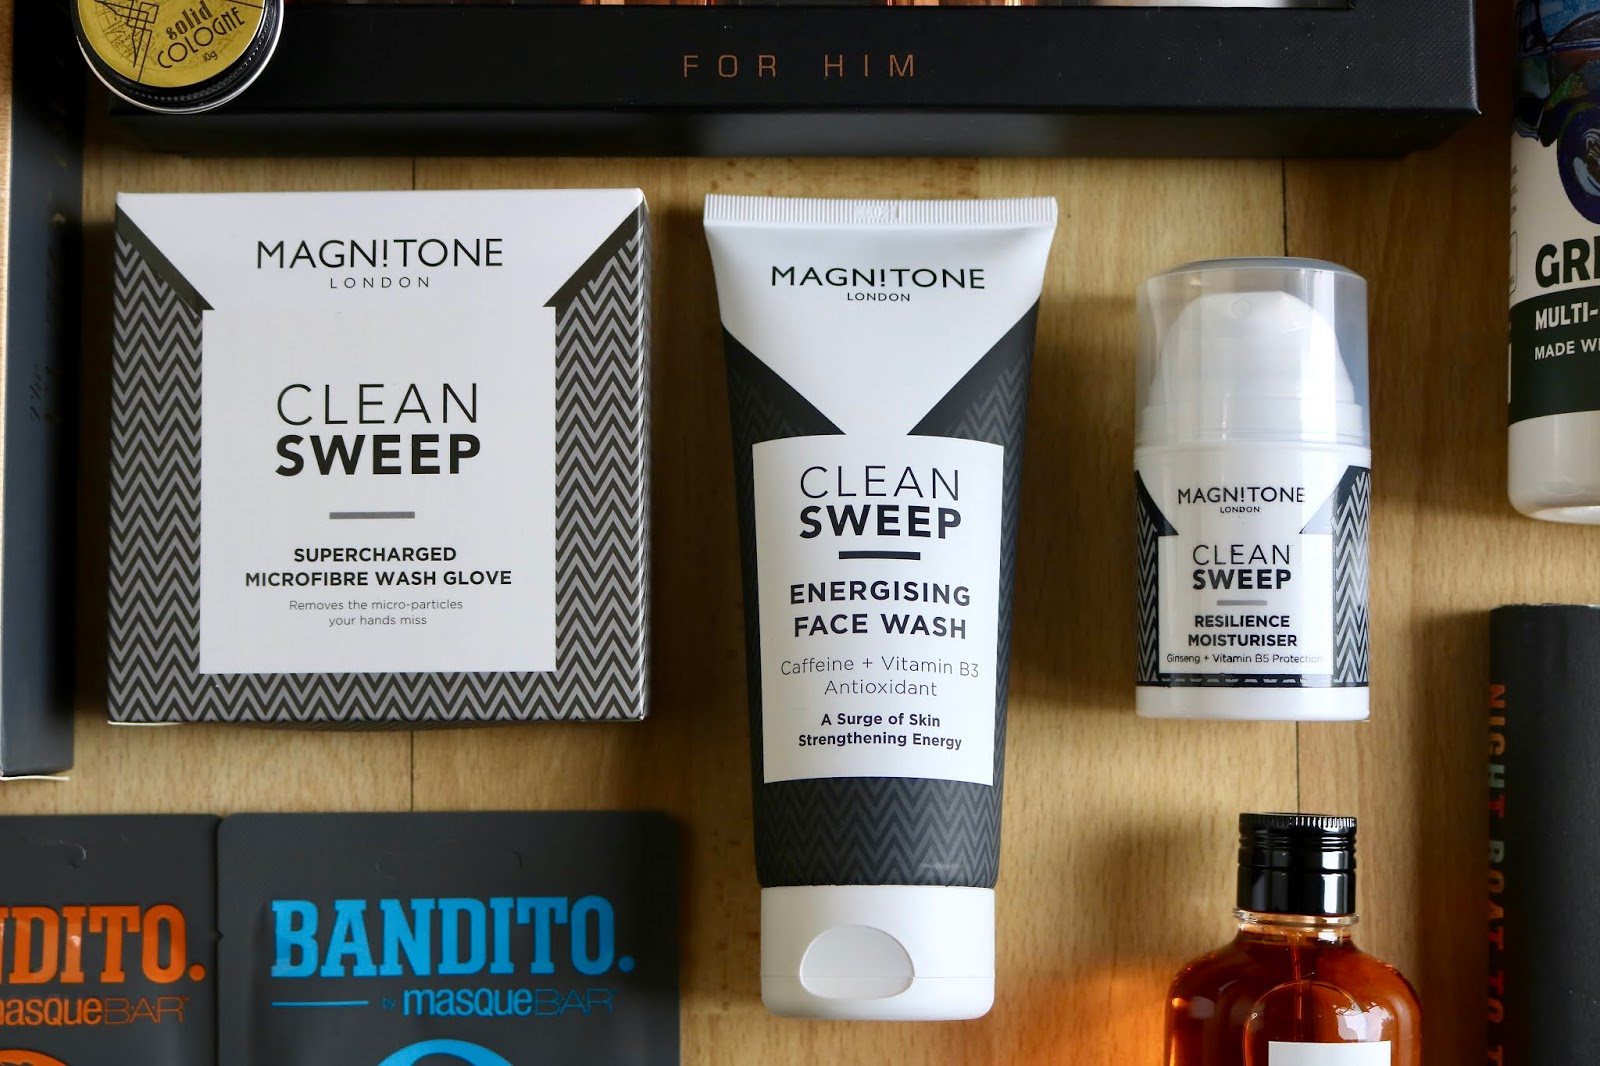 MAGNITONE CLEAN SWEEP MOISTURISER AND CLEANSER